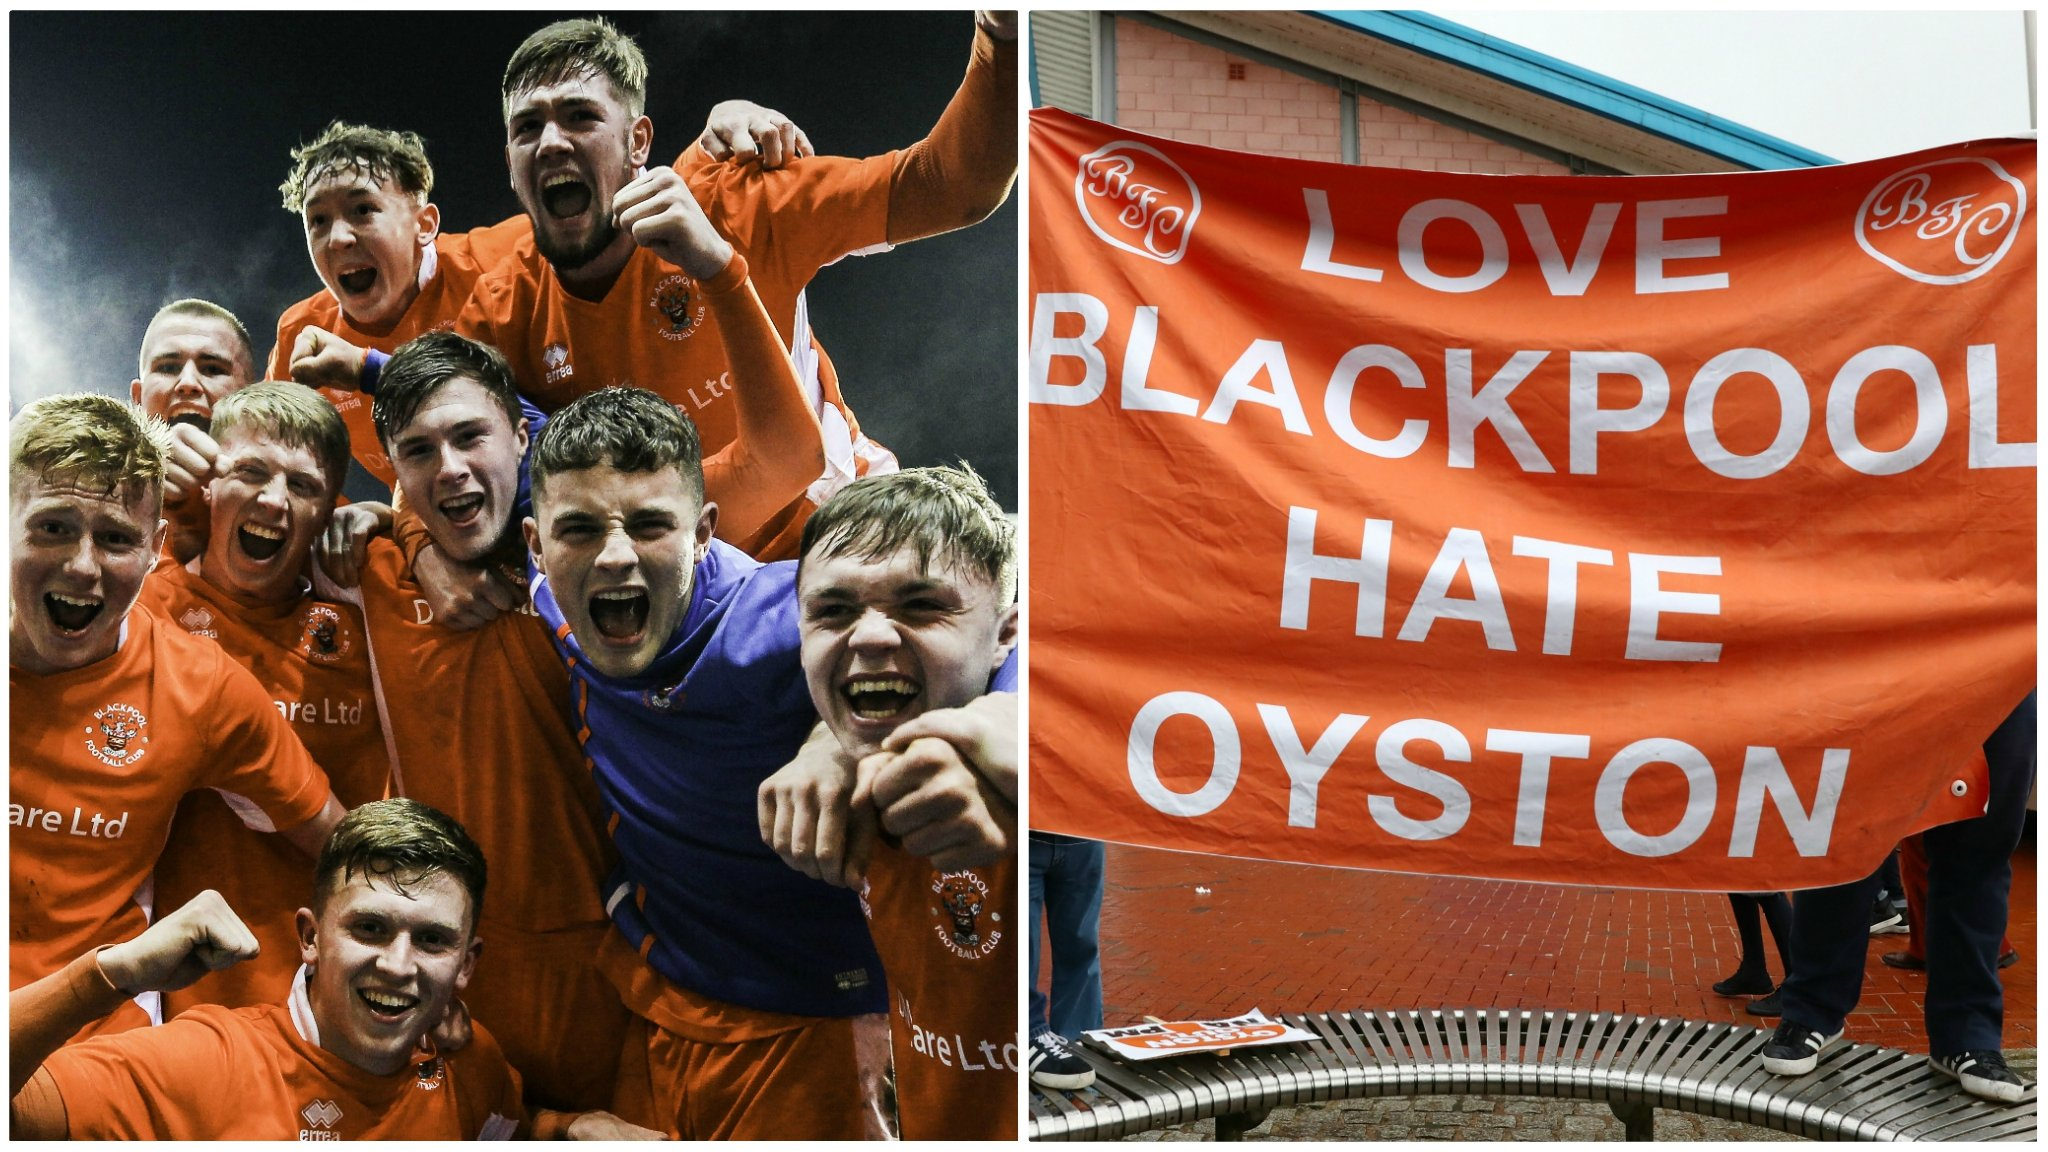 'Amid chaos at Blackpool, the brilliant youth team are caught in the crossfire'